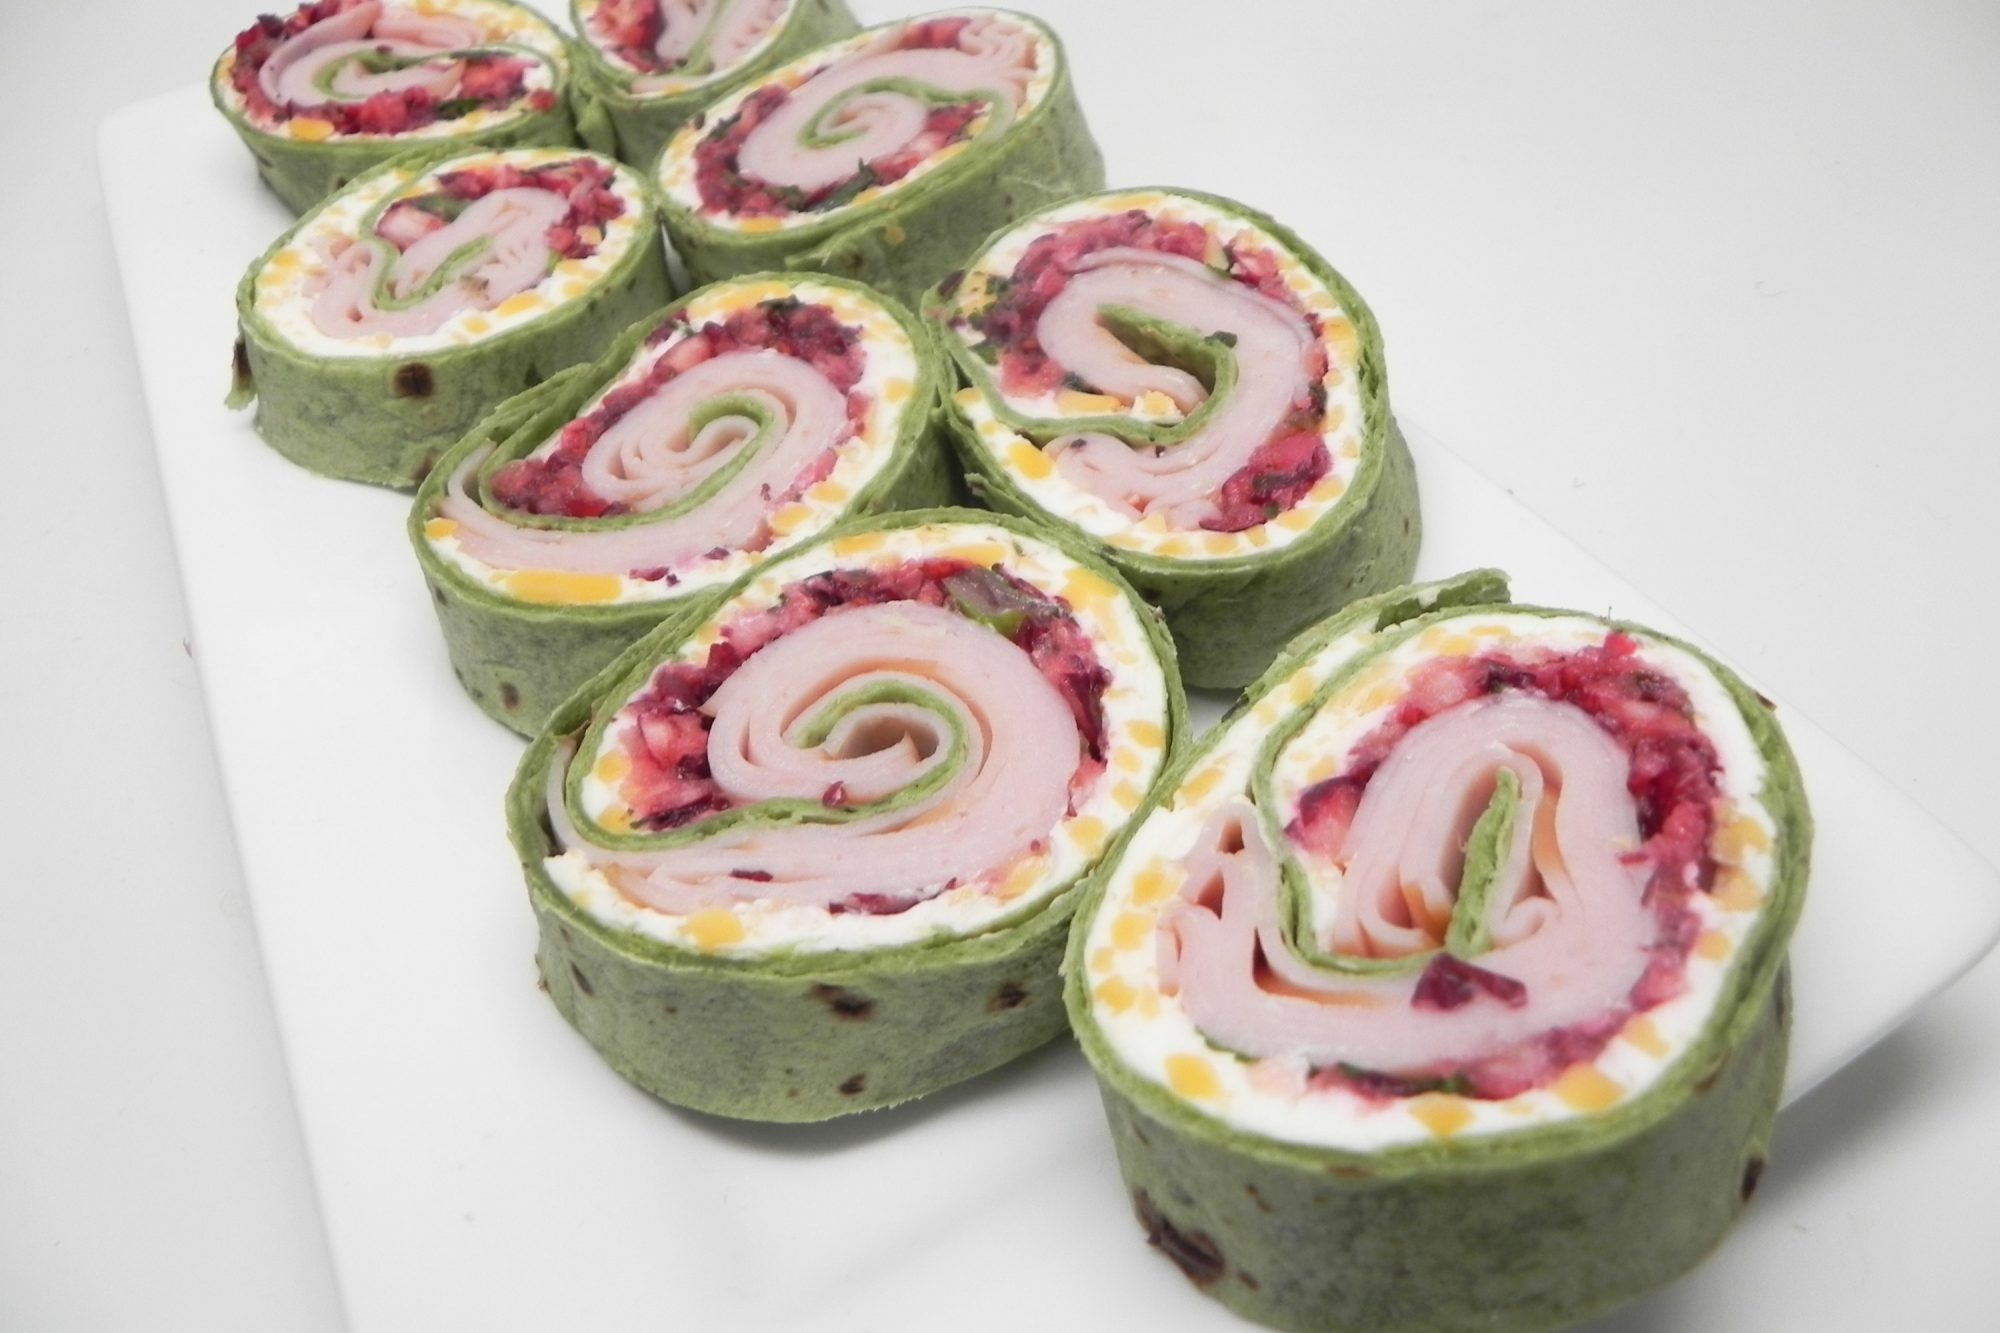 Spicy Turkey and Cranberry Pinwheels